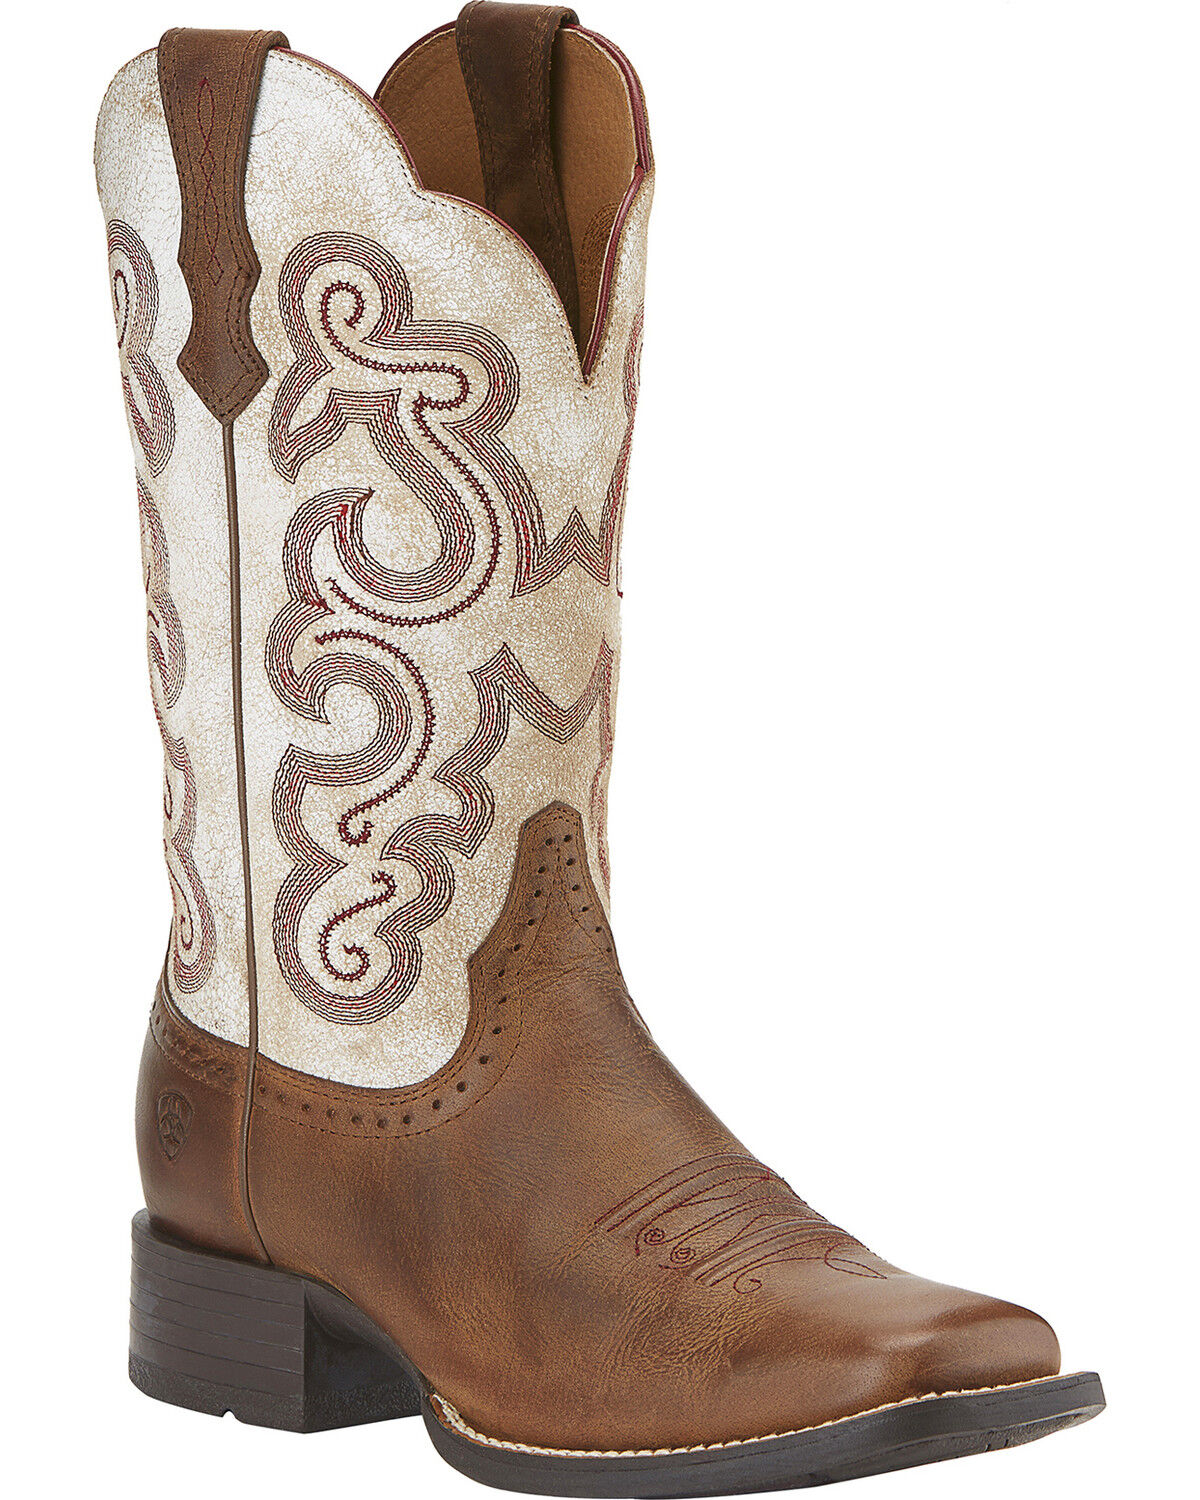 Quickdraw Cowgirl Boots - Square Toe